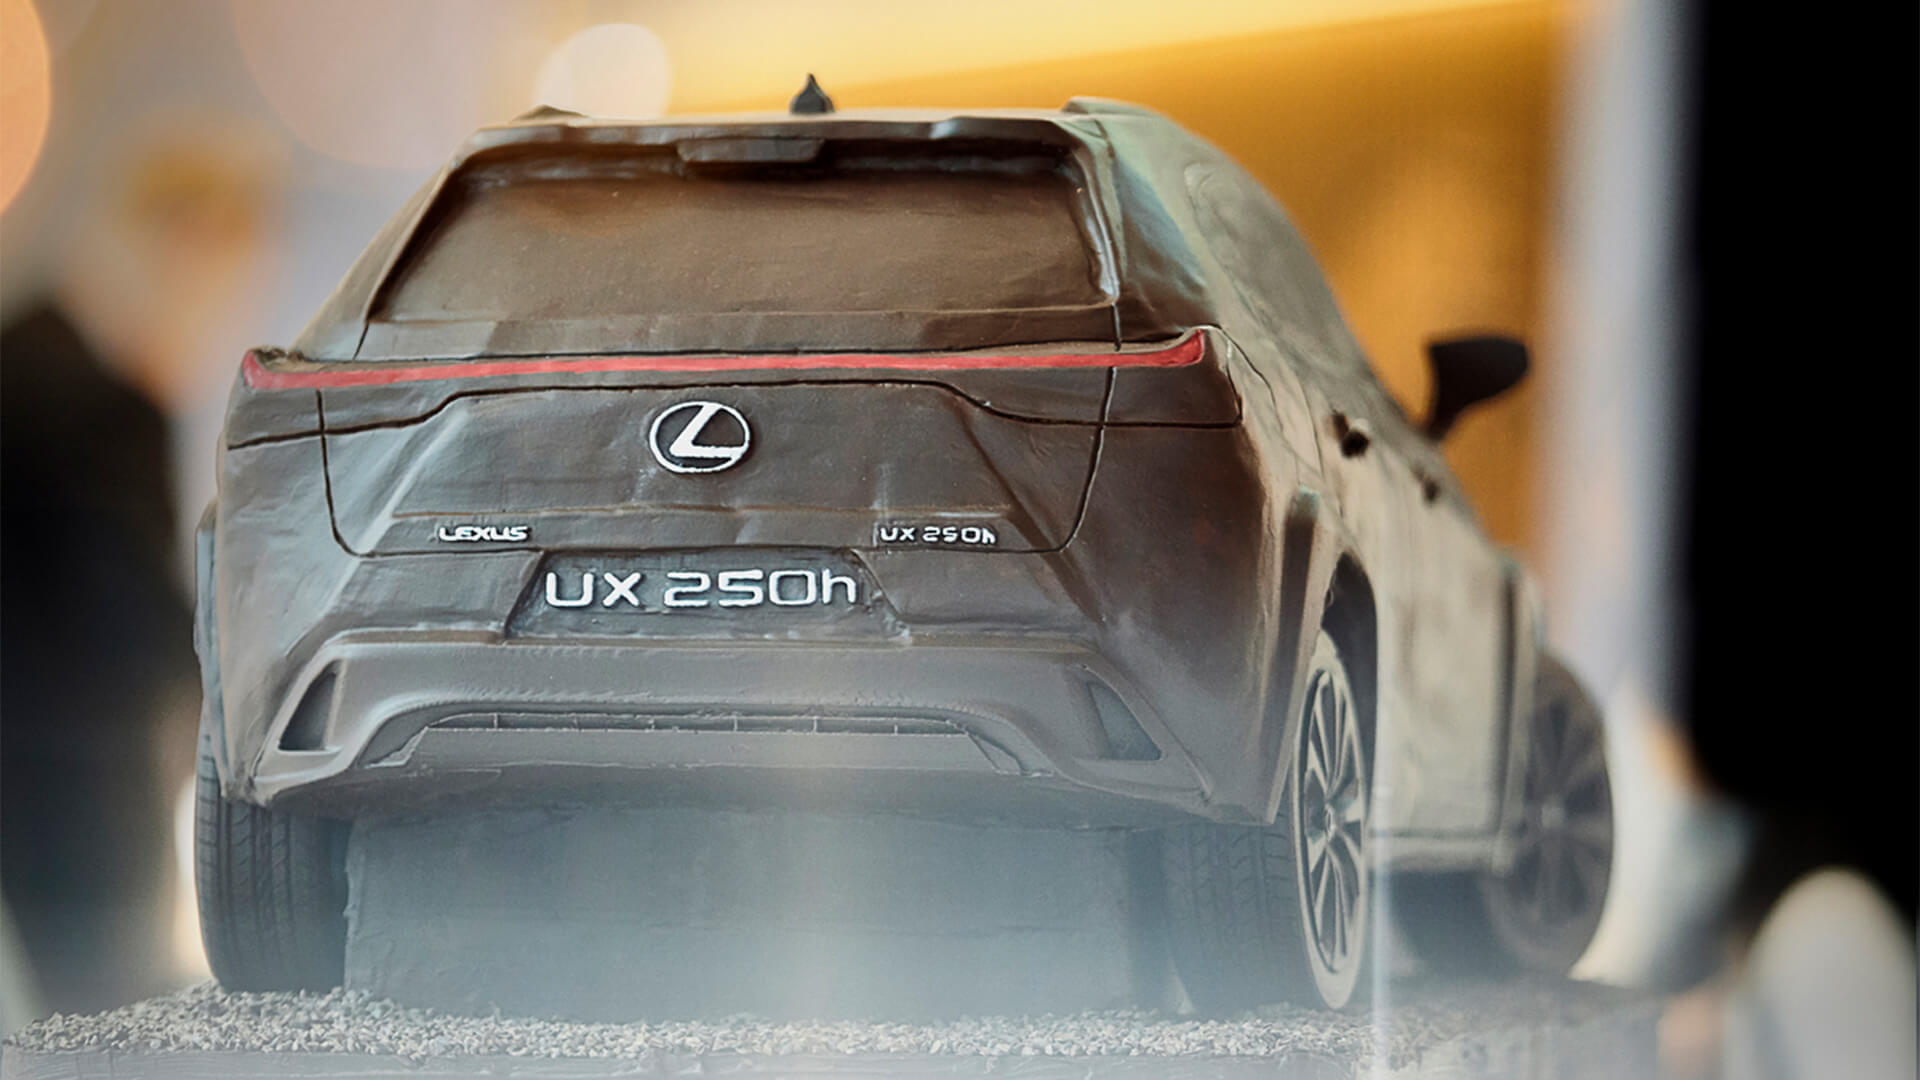 2019 lexus lounge UX Chocolate Car 1920x1080 13